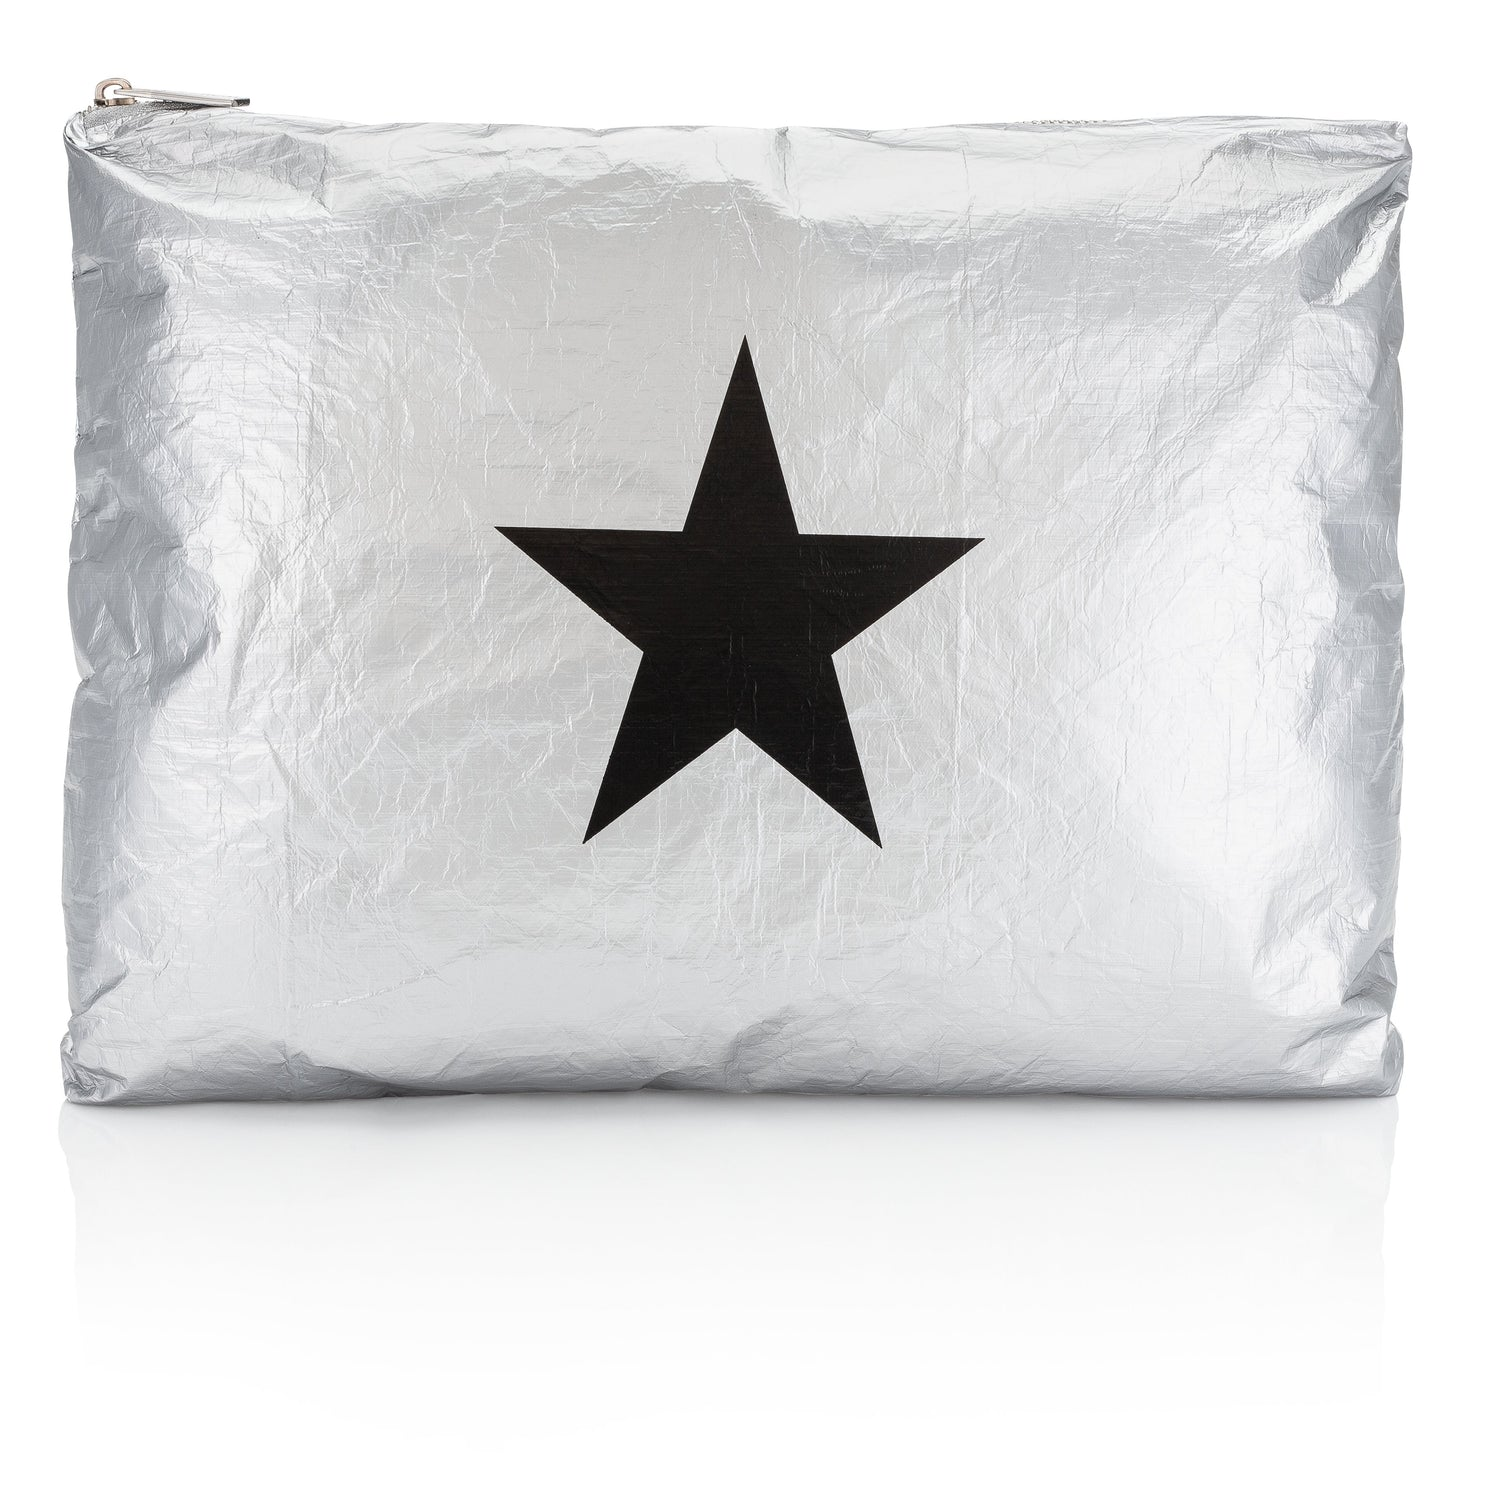 Jumbo Pack - Metallic Silver with a Black Star